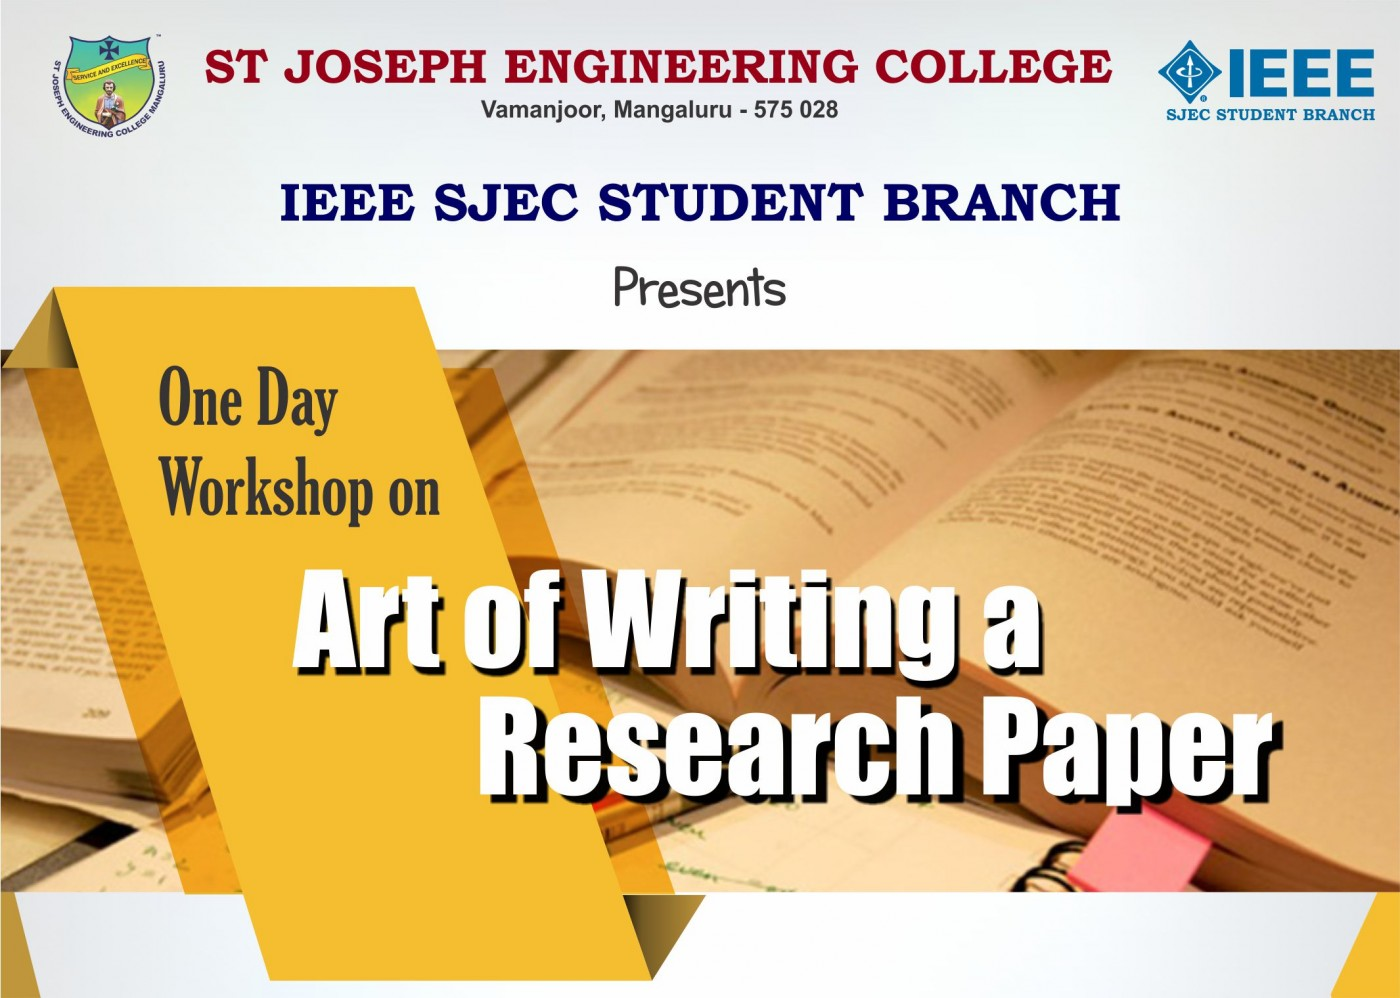 005 Workshop Banner Researchs Writing Fascinating Research Papers Best Paper Services In India Benefits Style 1400